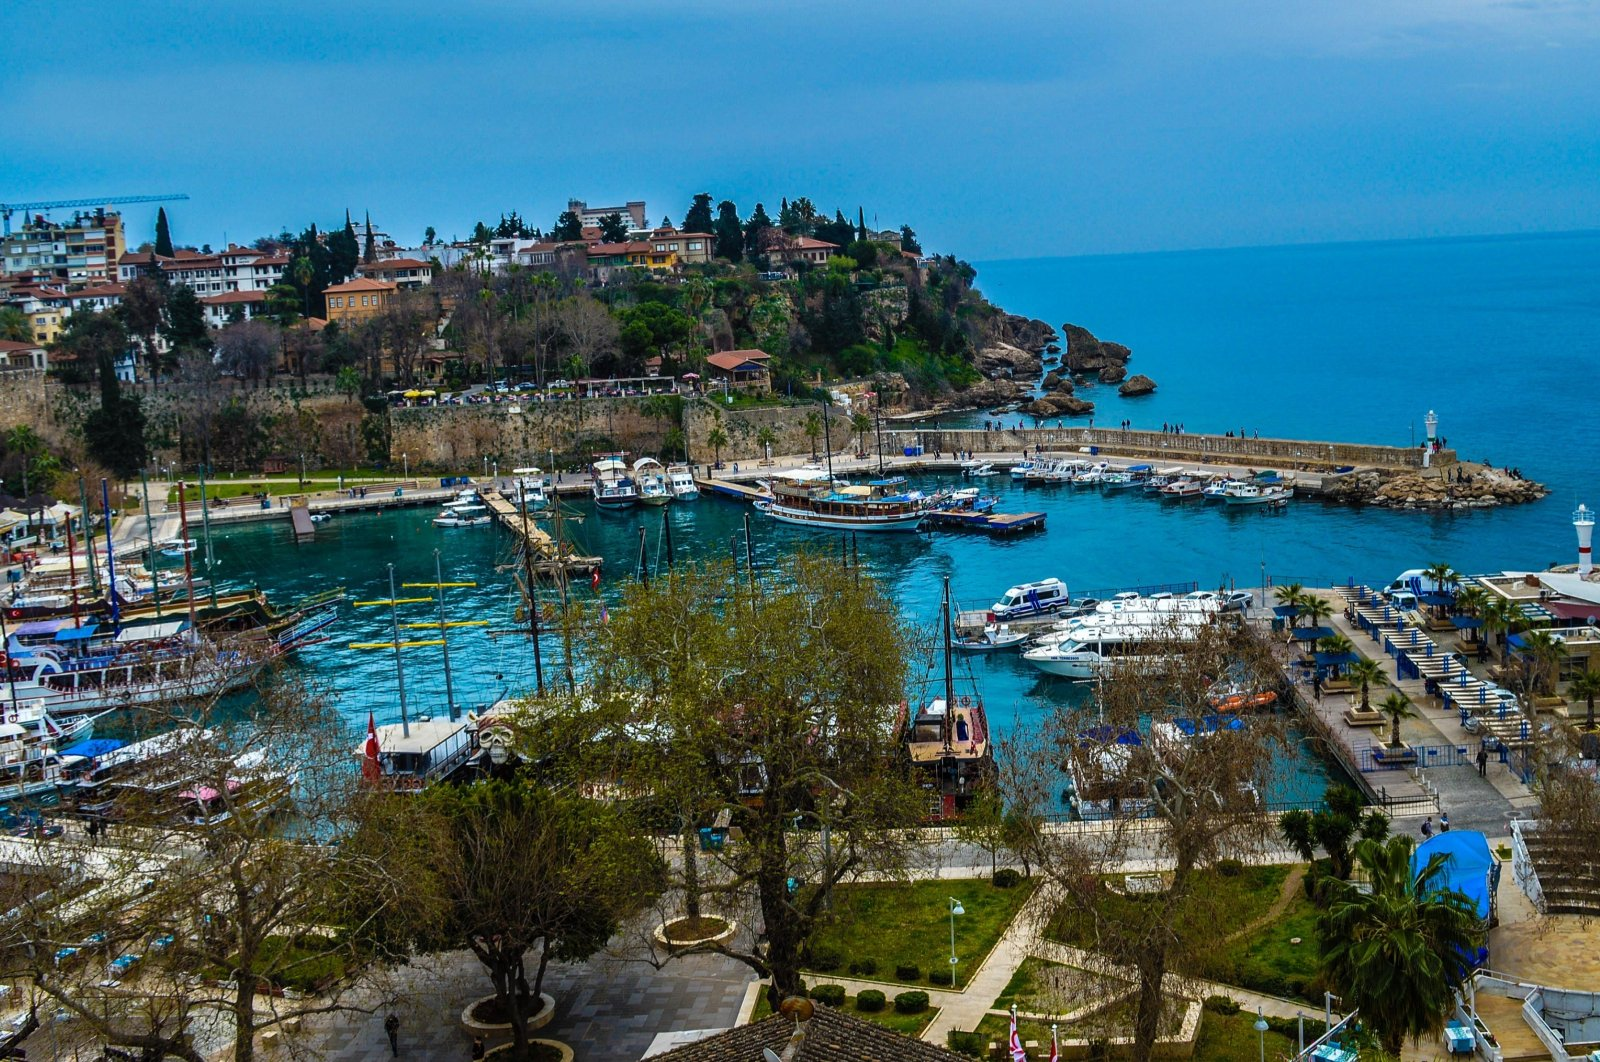 Boats and yachts are docked in a marina, Antalya, southern Turkey, March 9, 2021. (Photo by Getty Images)